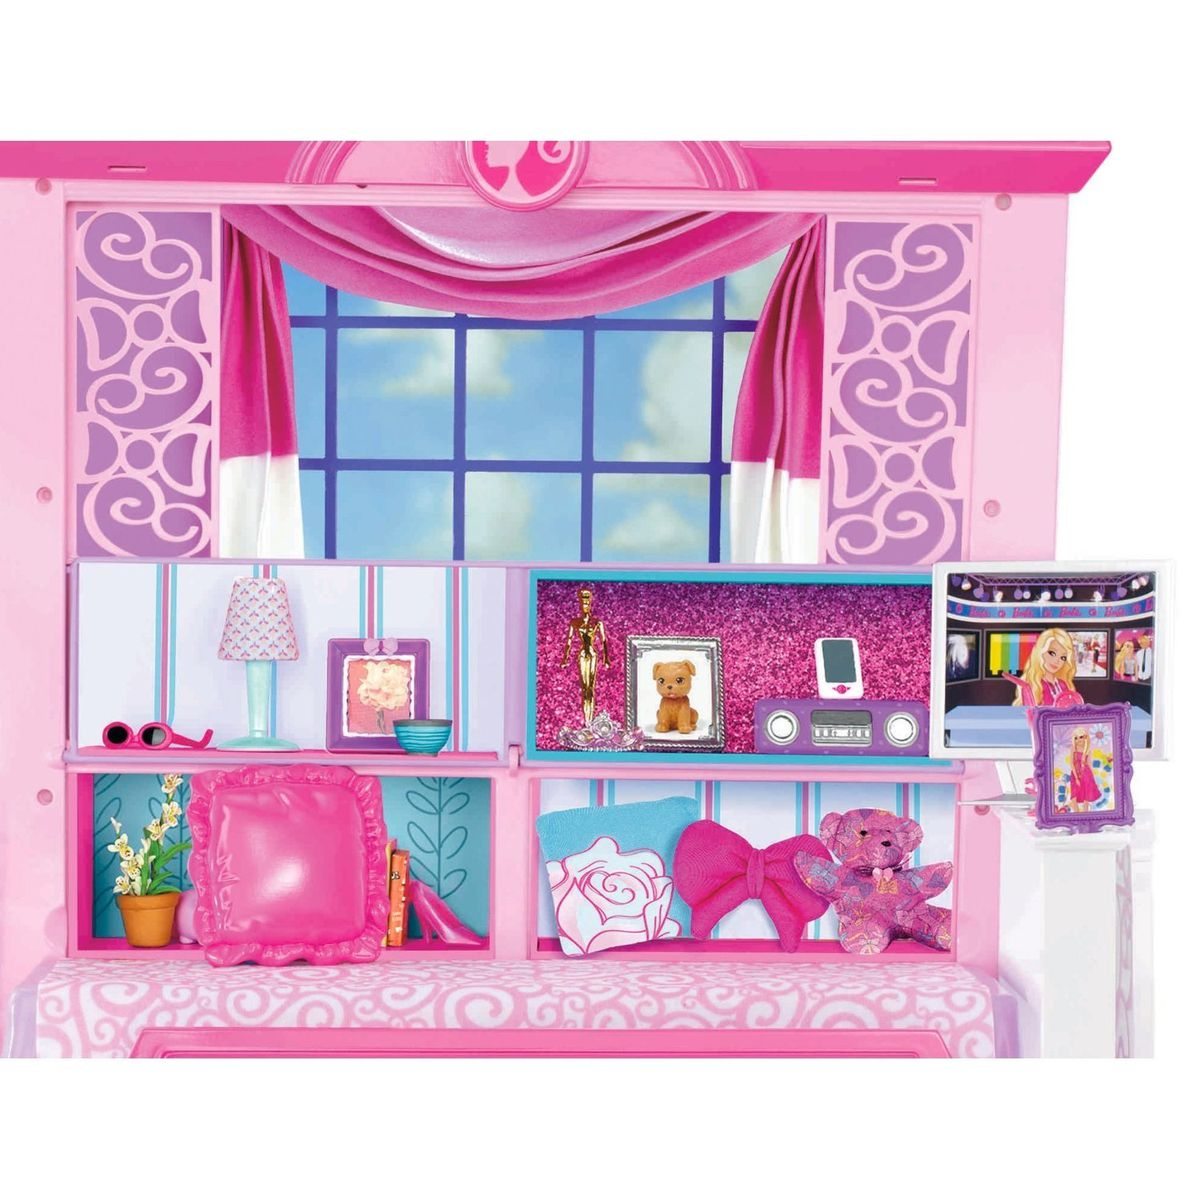 Barbie Glam Vacation Doll House Set - Pink